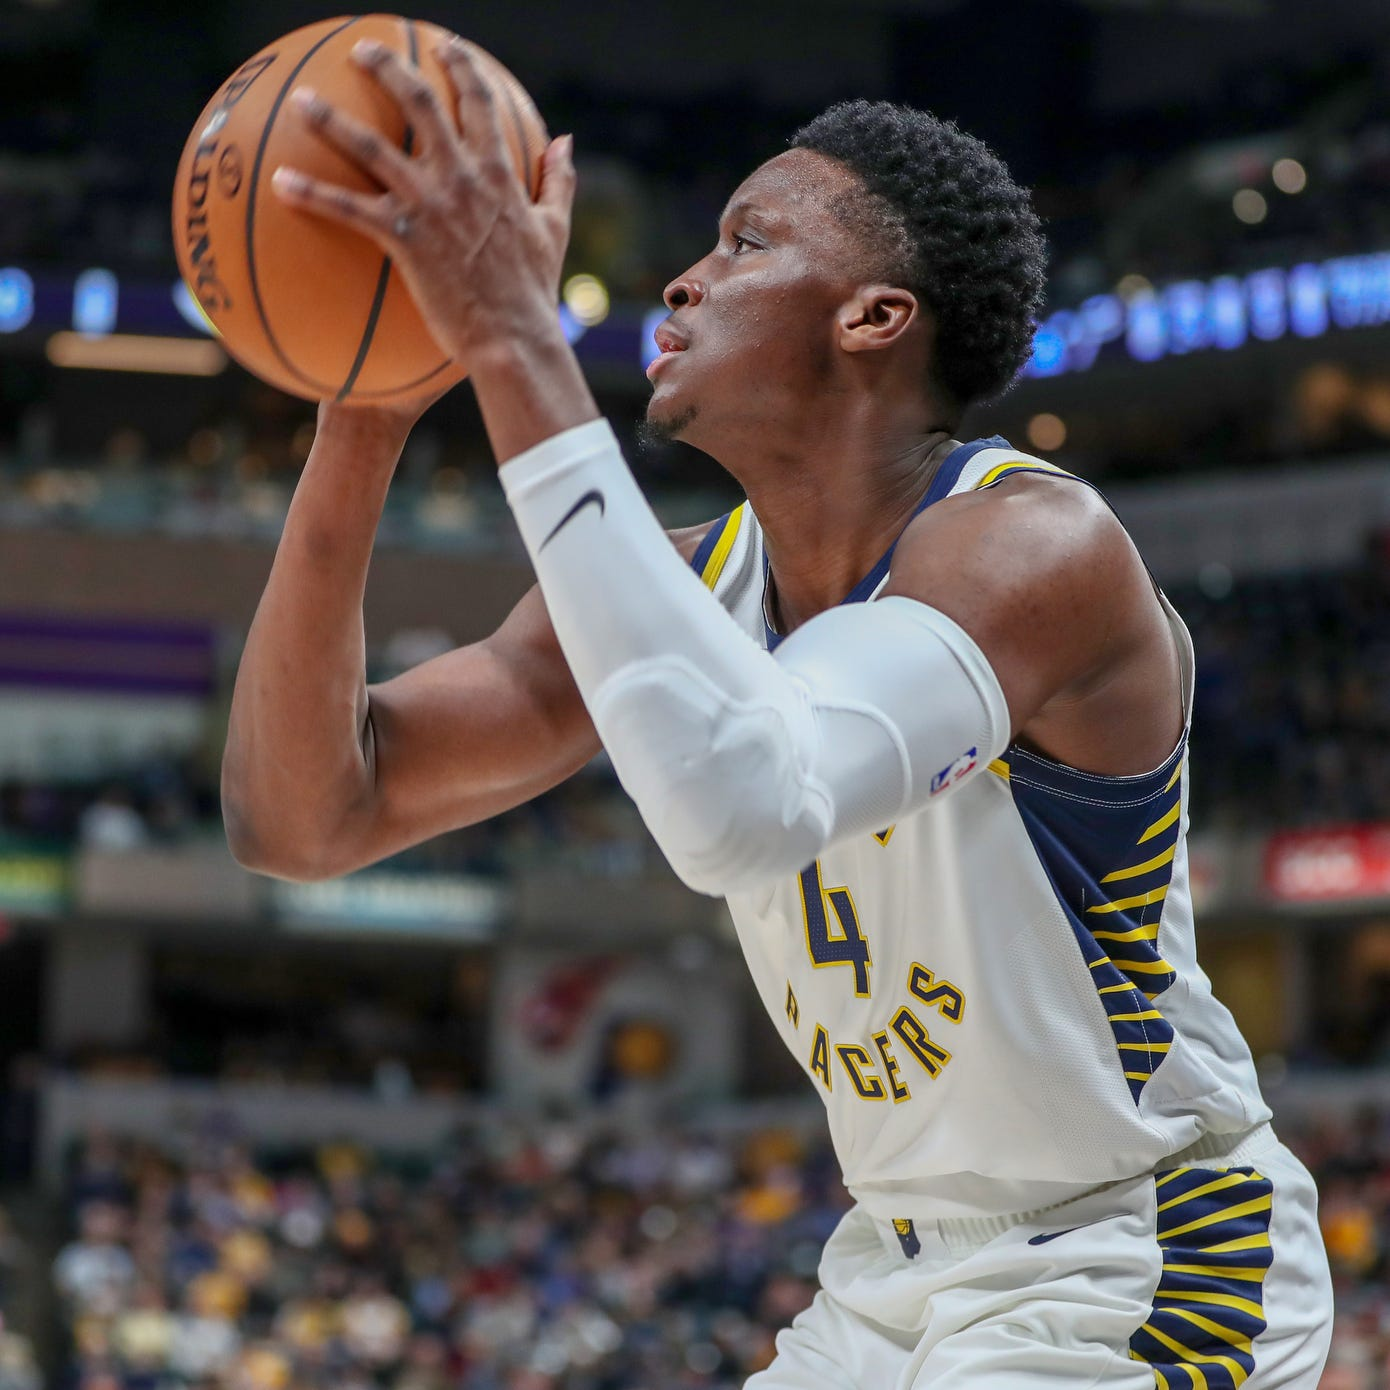 'Perfect' return for Victor Oladipo in Pacers win over Bucks